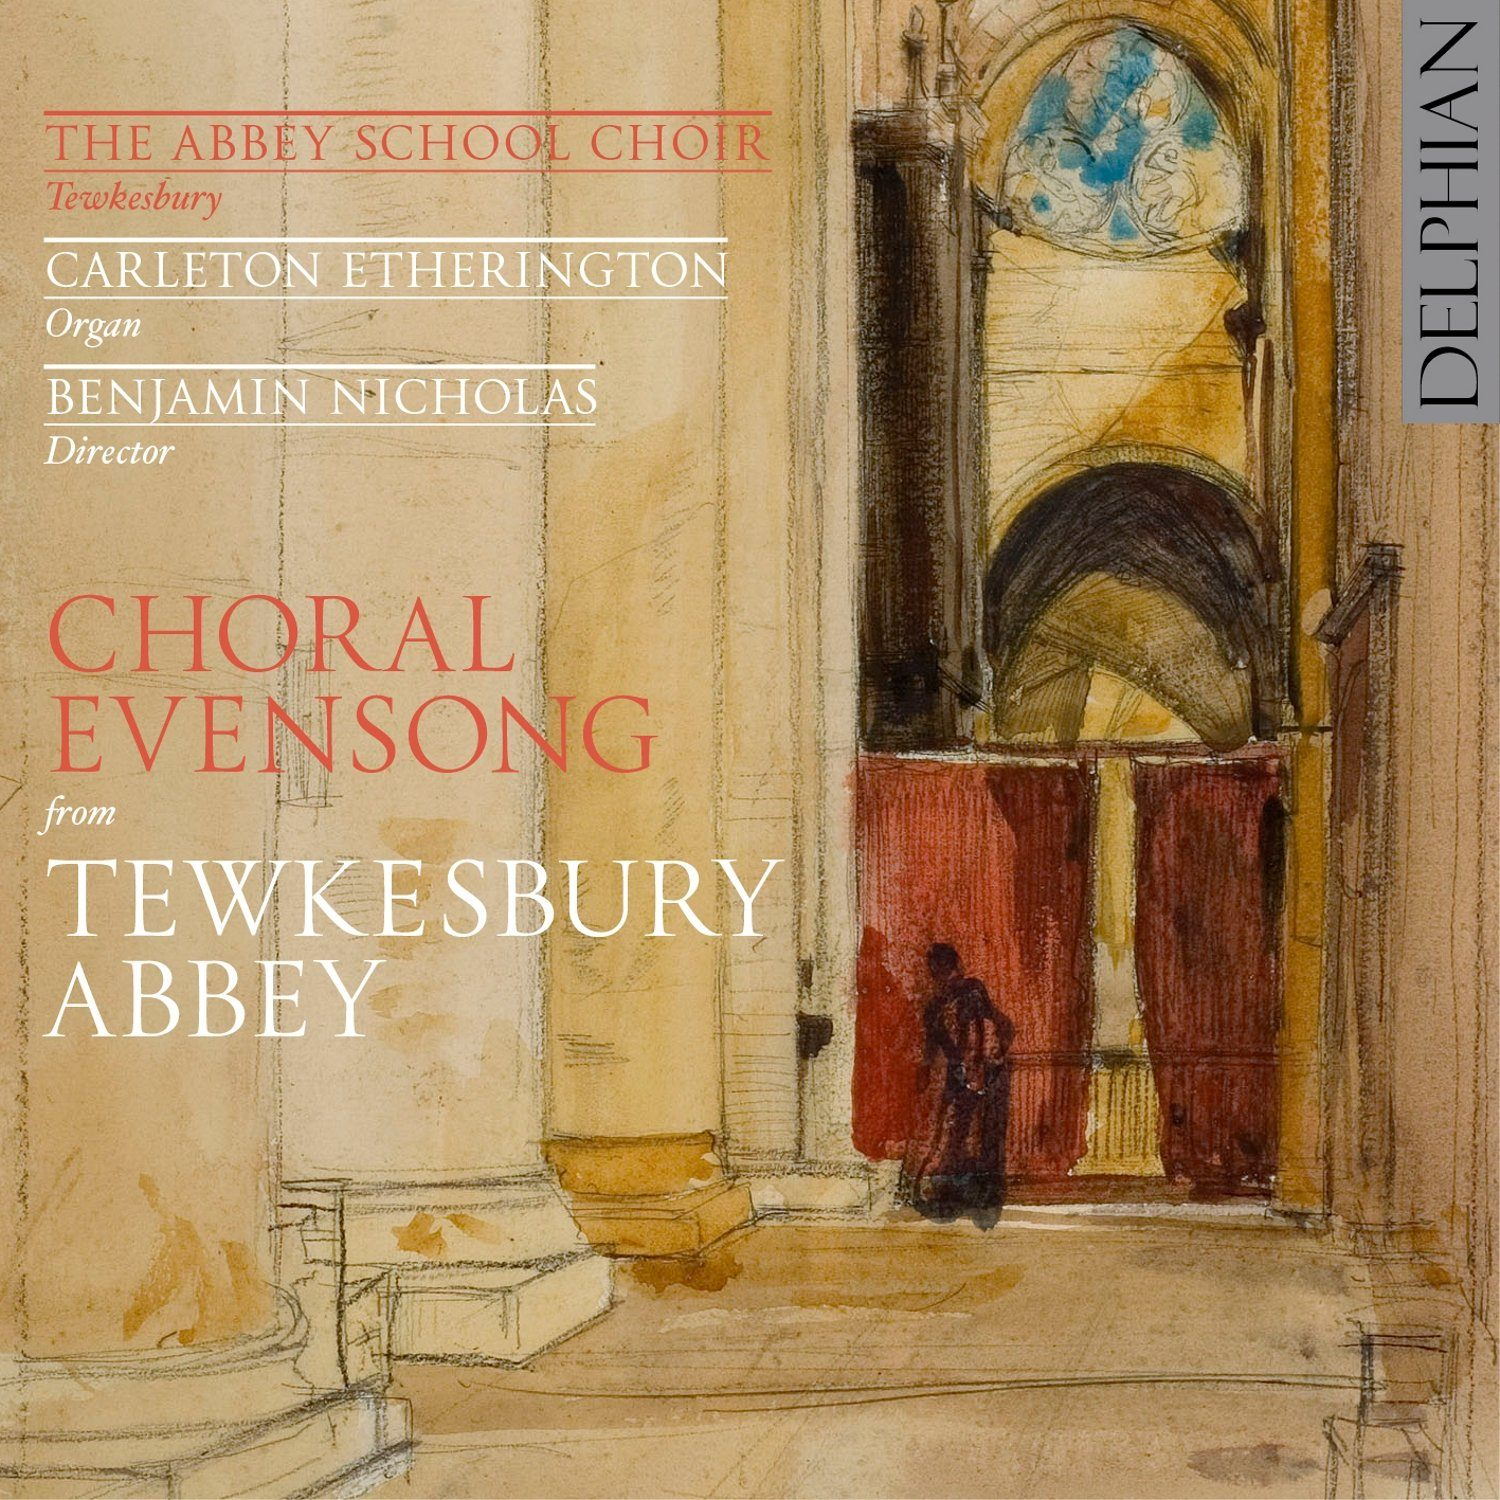 Choral Evensong from Tewkesbury Abbey CD Delphian Records